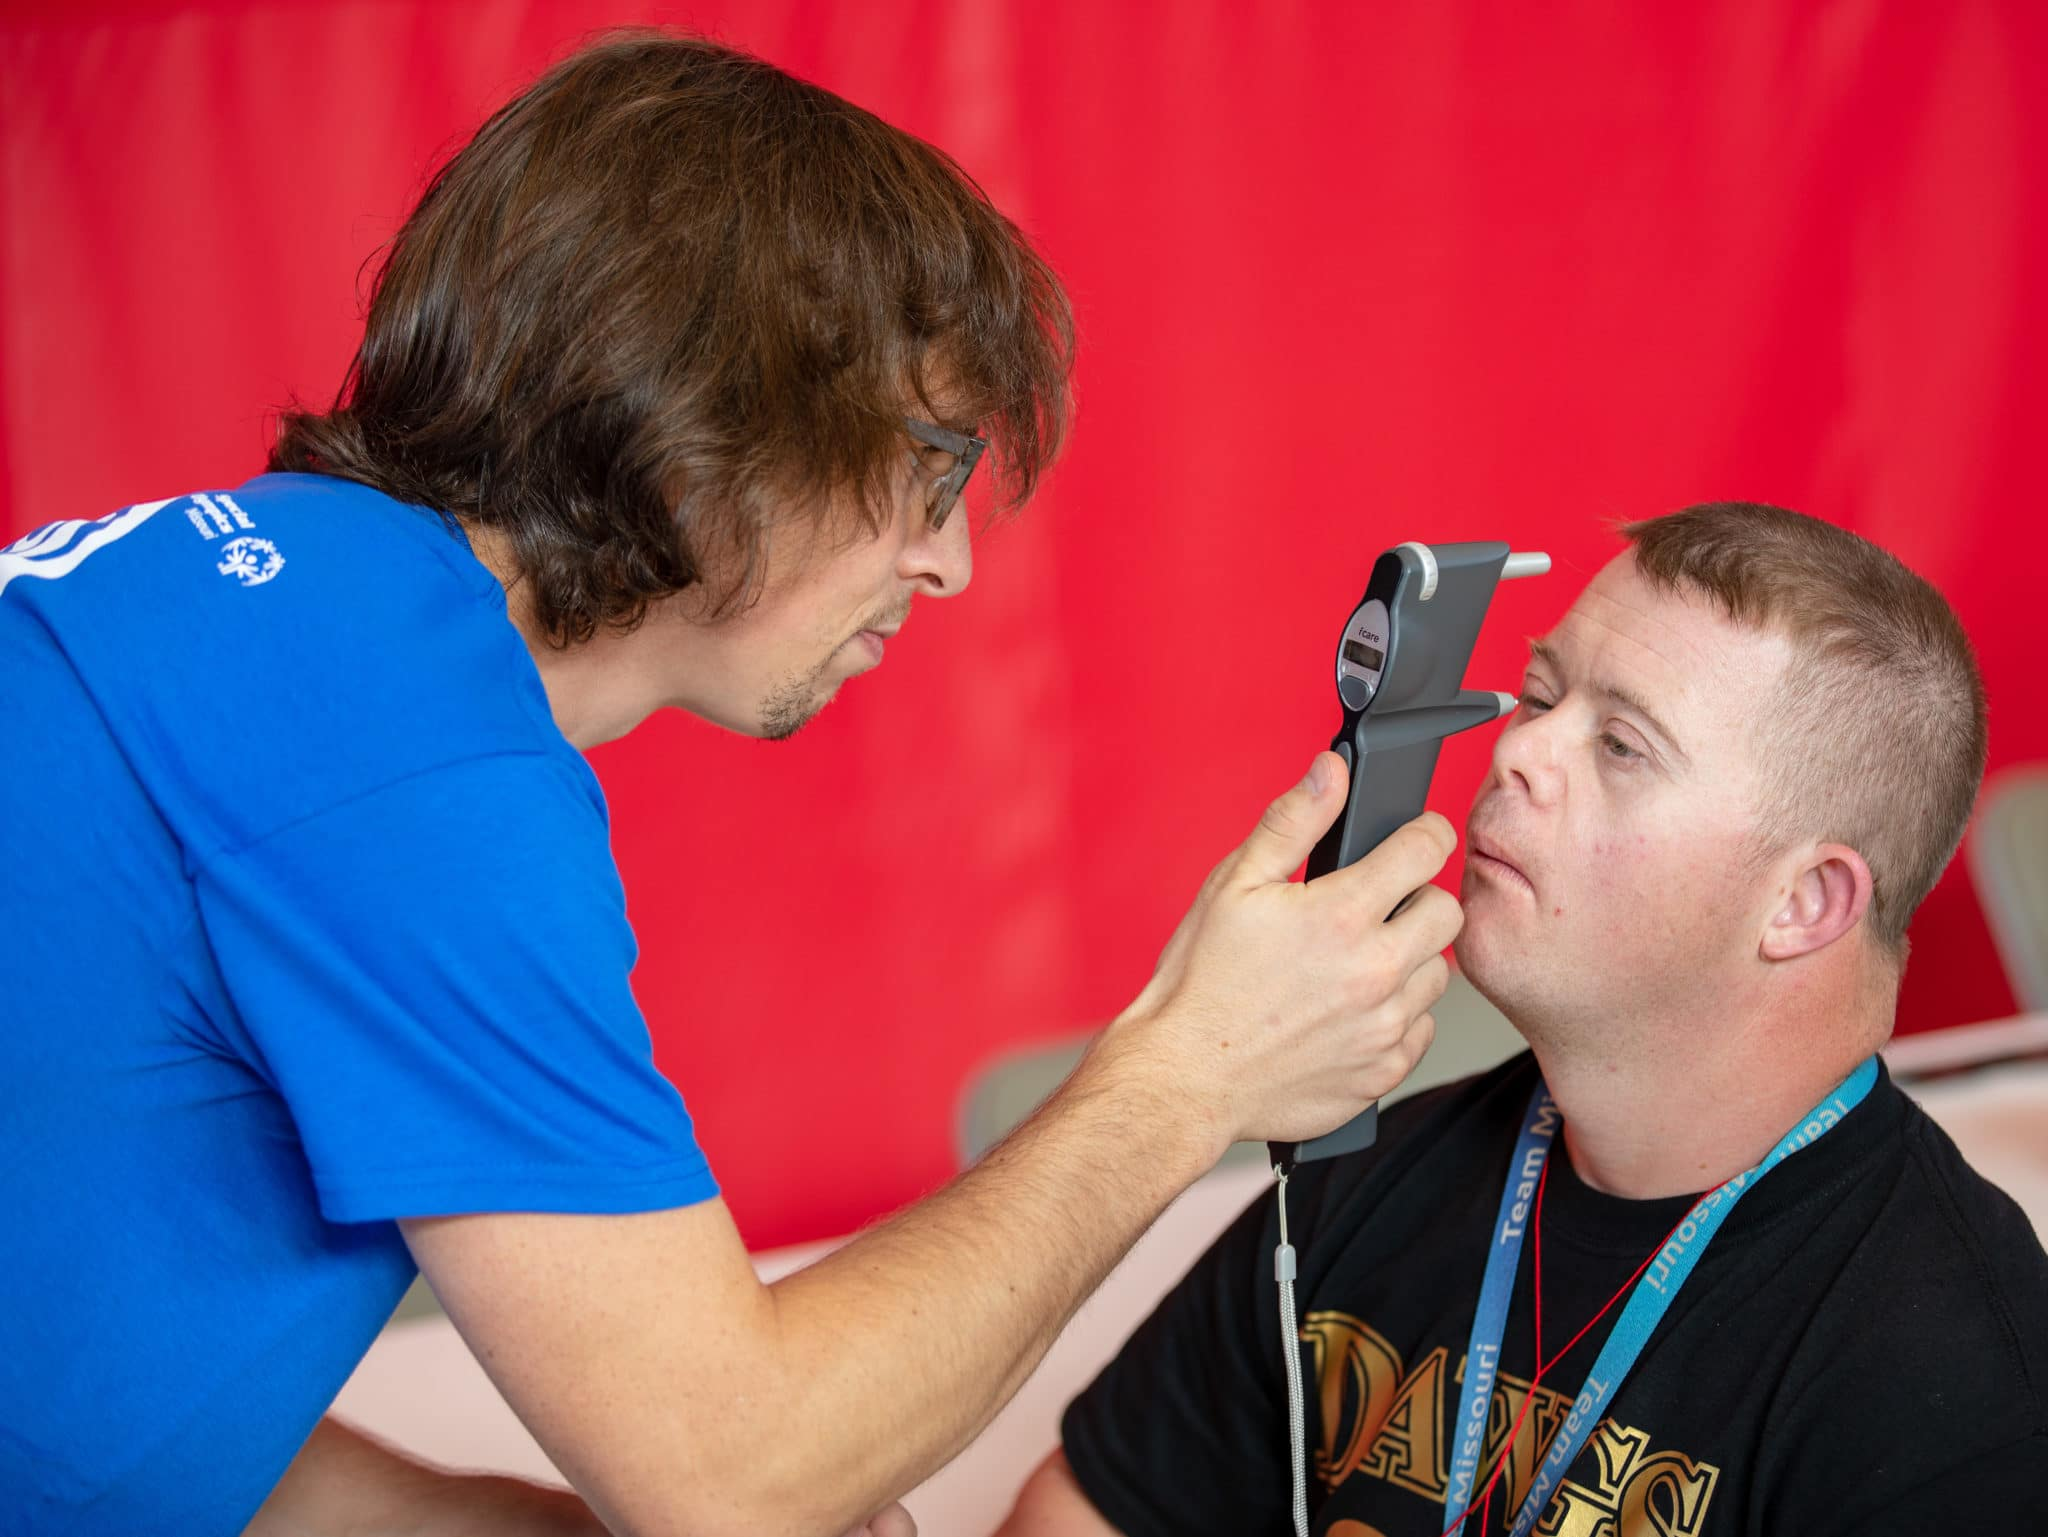 An athlete struggles to keep their eyes open as a volunteer uses an instrument to test their sight